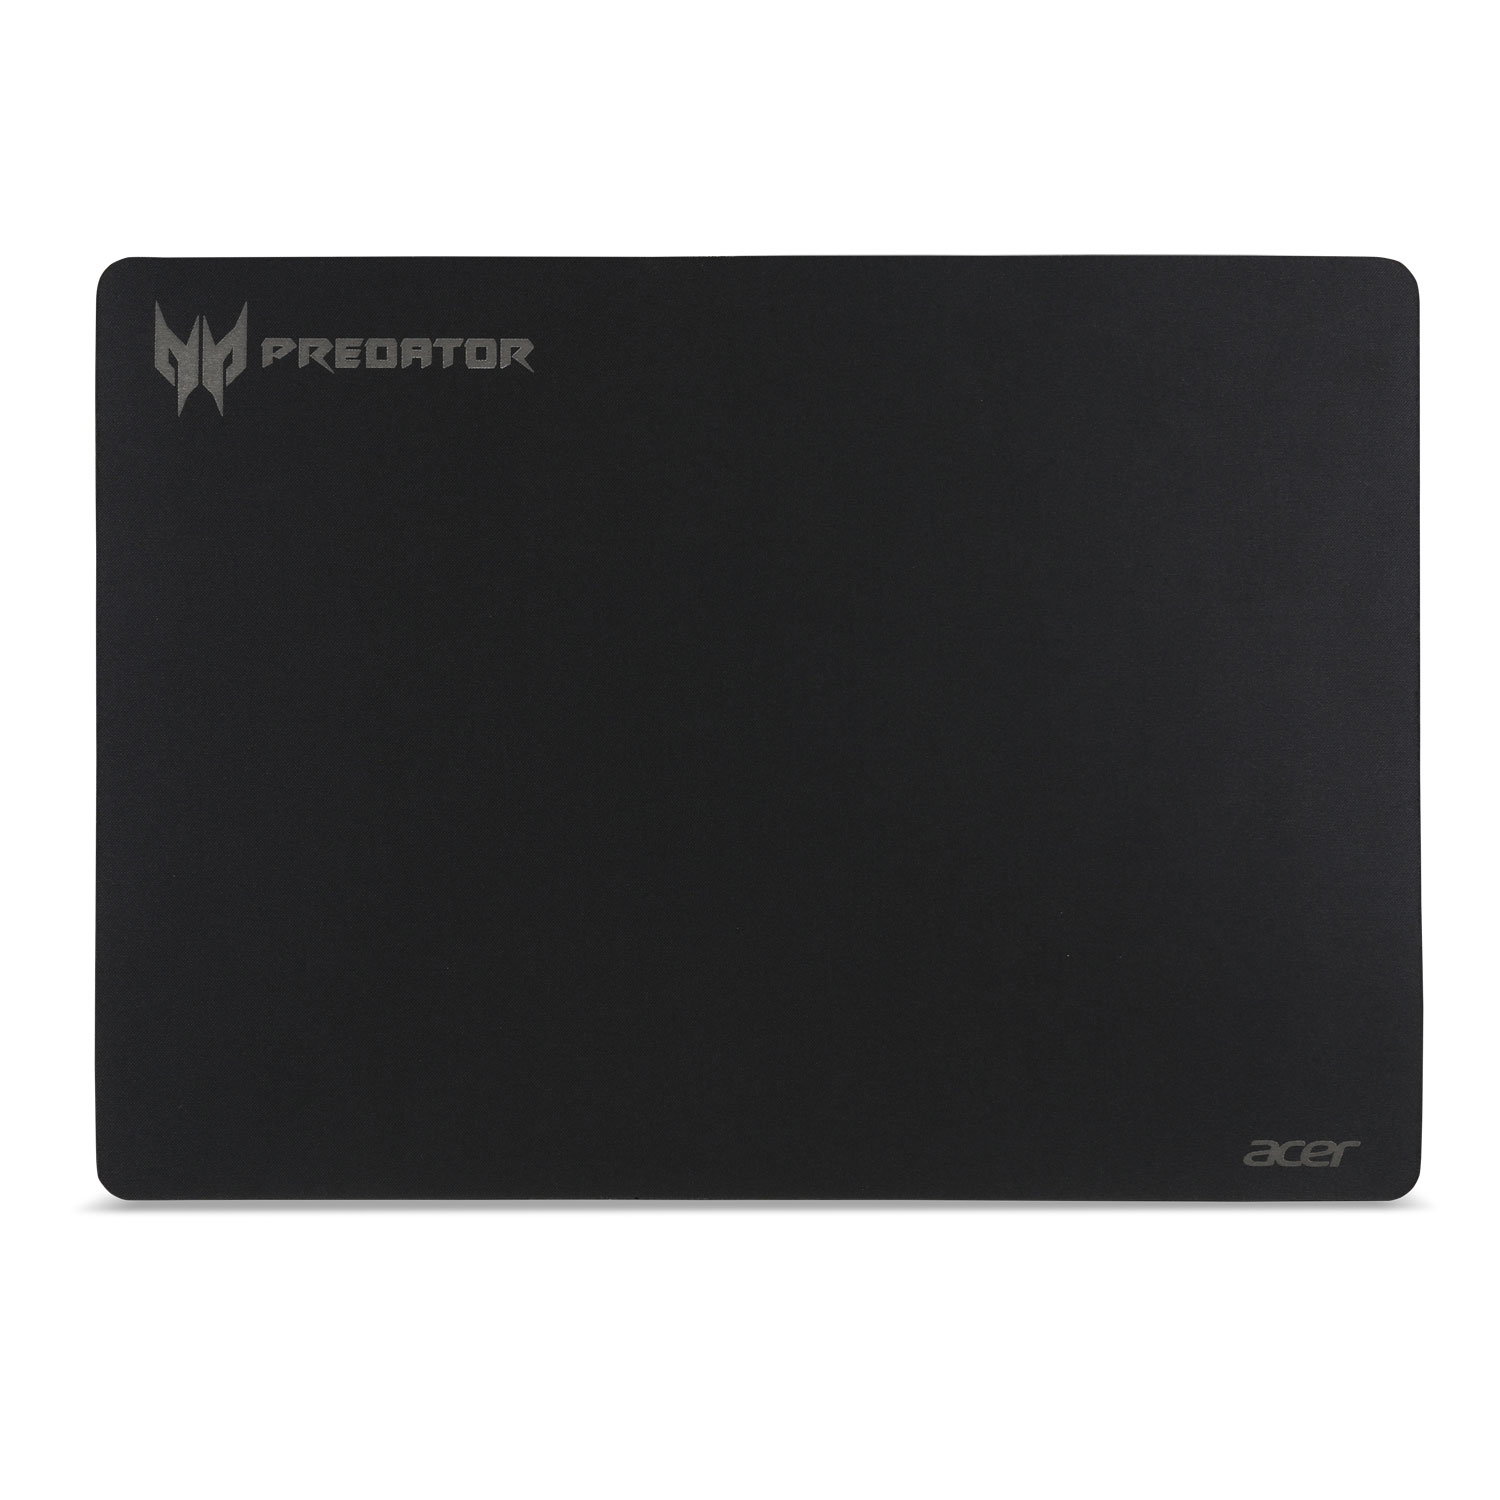 acer predator gaming mouse pad tapis de souris acer sur. Black Bedroom Furniture Sets. Home Design Ideas